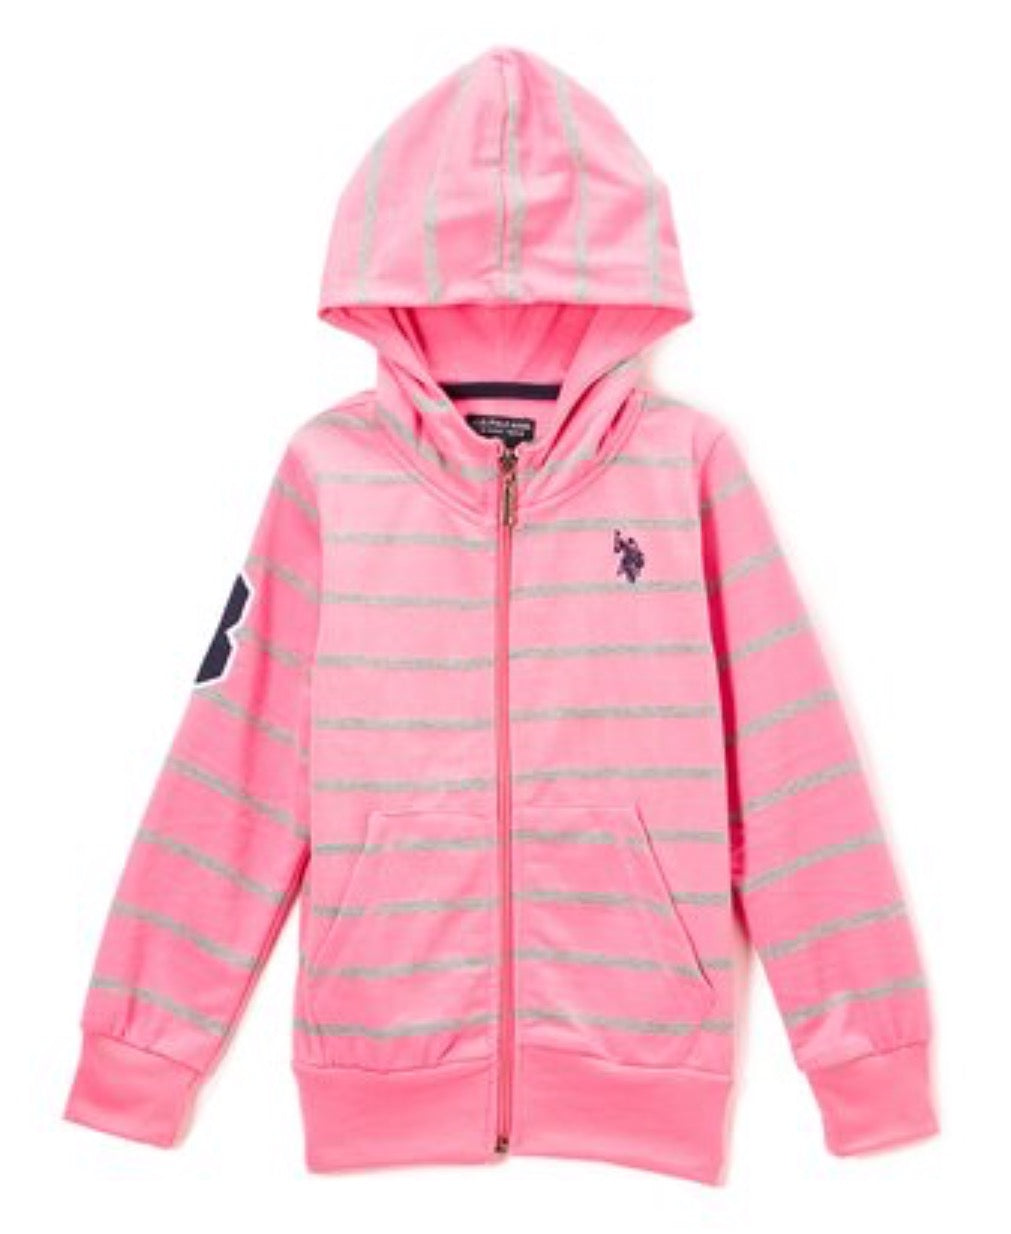 Boys - US Polo Zip Up Hoodie - Toddler & Girls